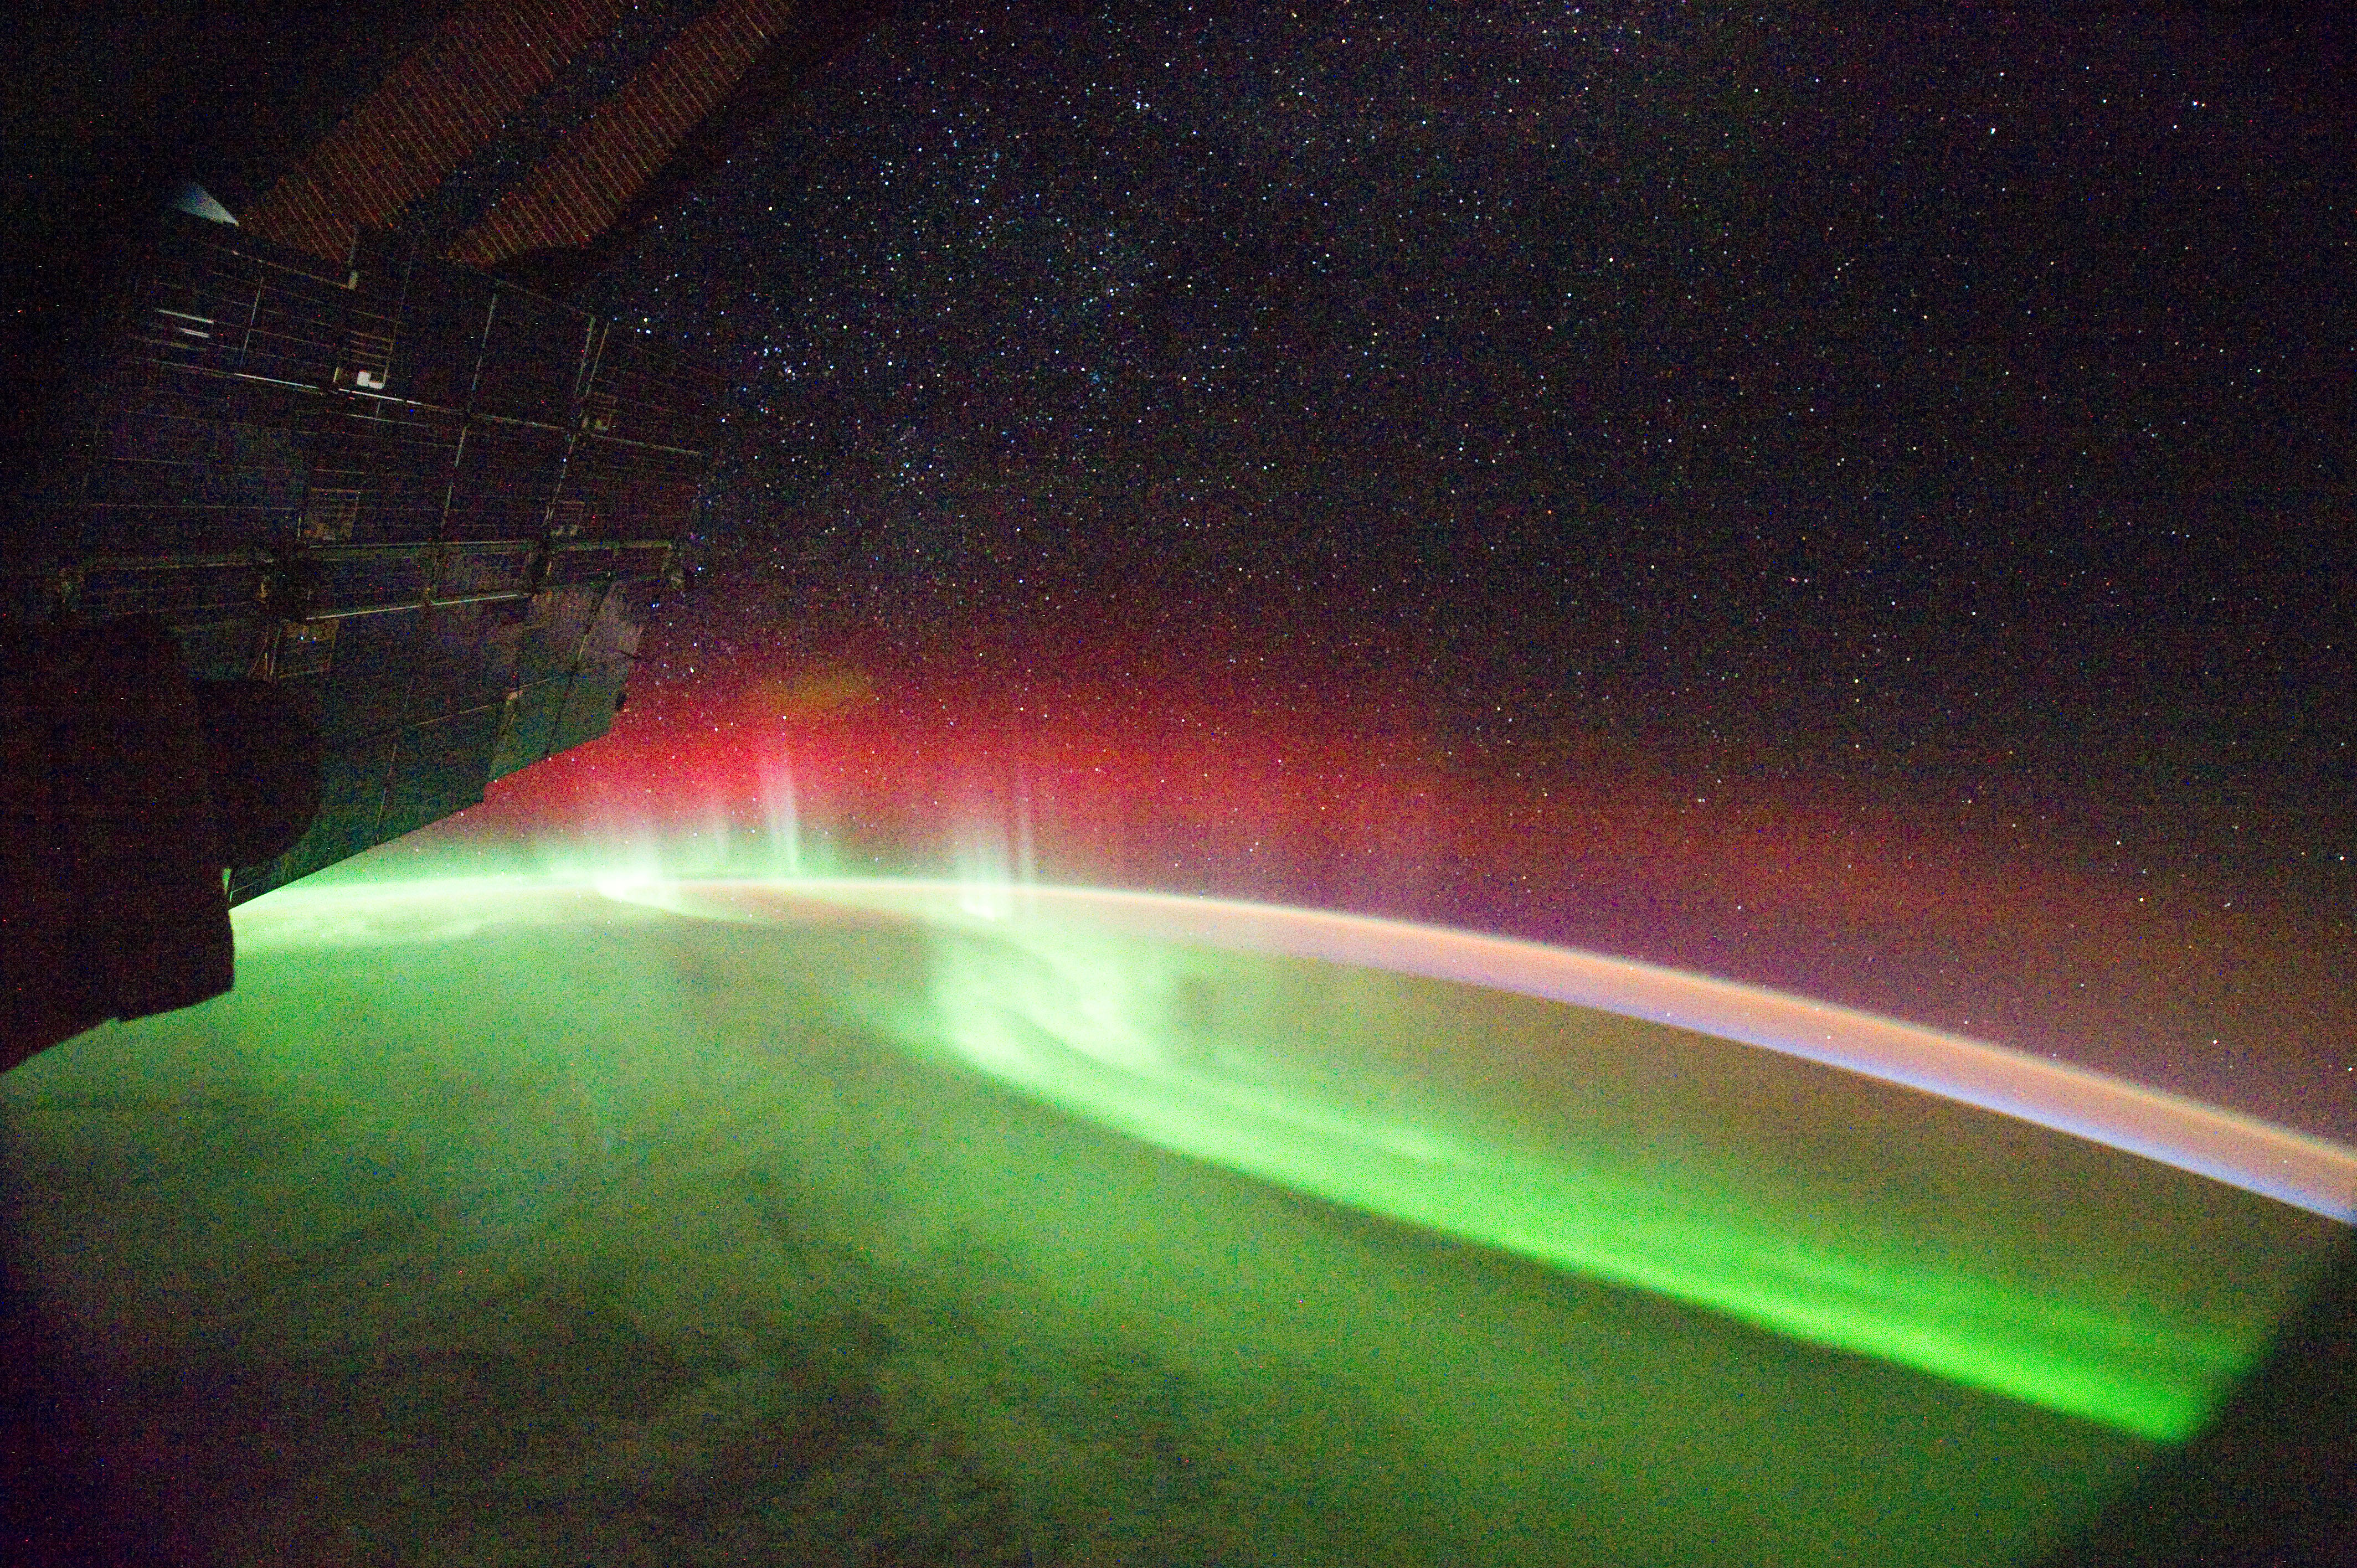 File:Aurora Seen From Space by NASA.jpg - Wikipedia